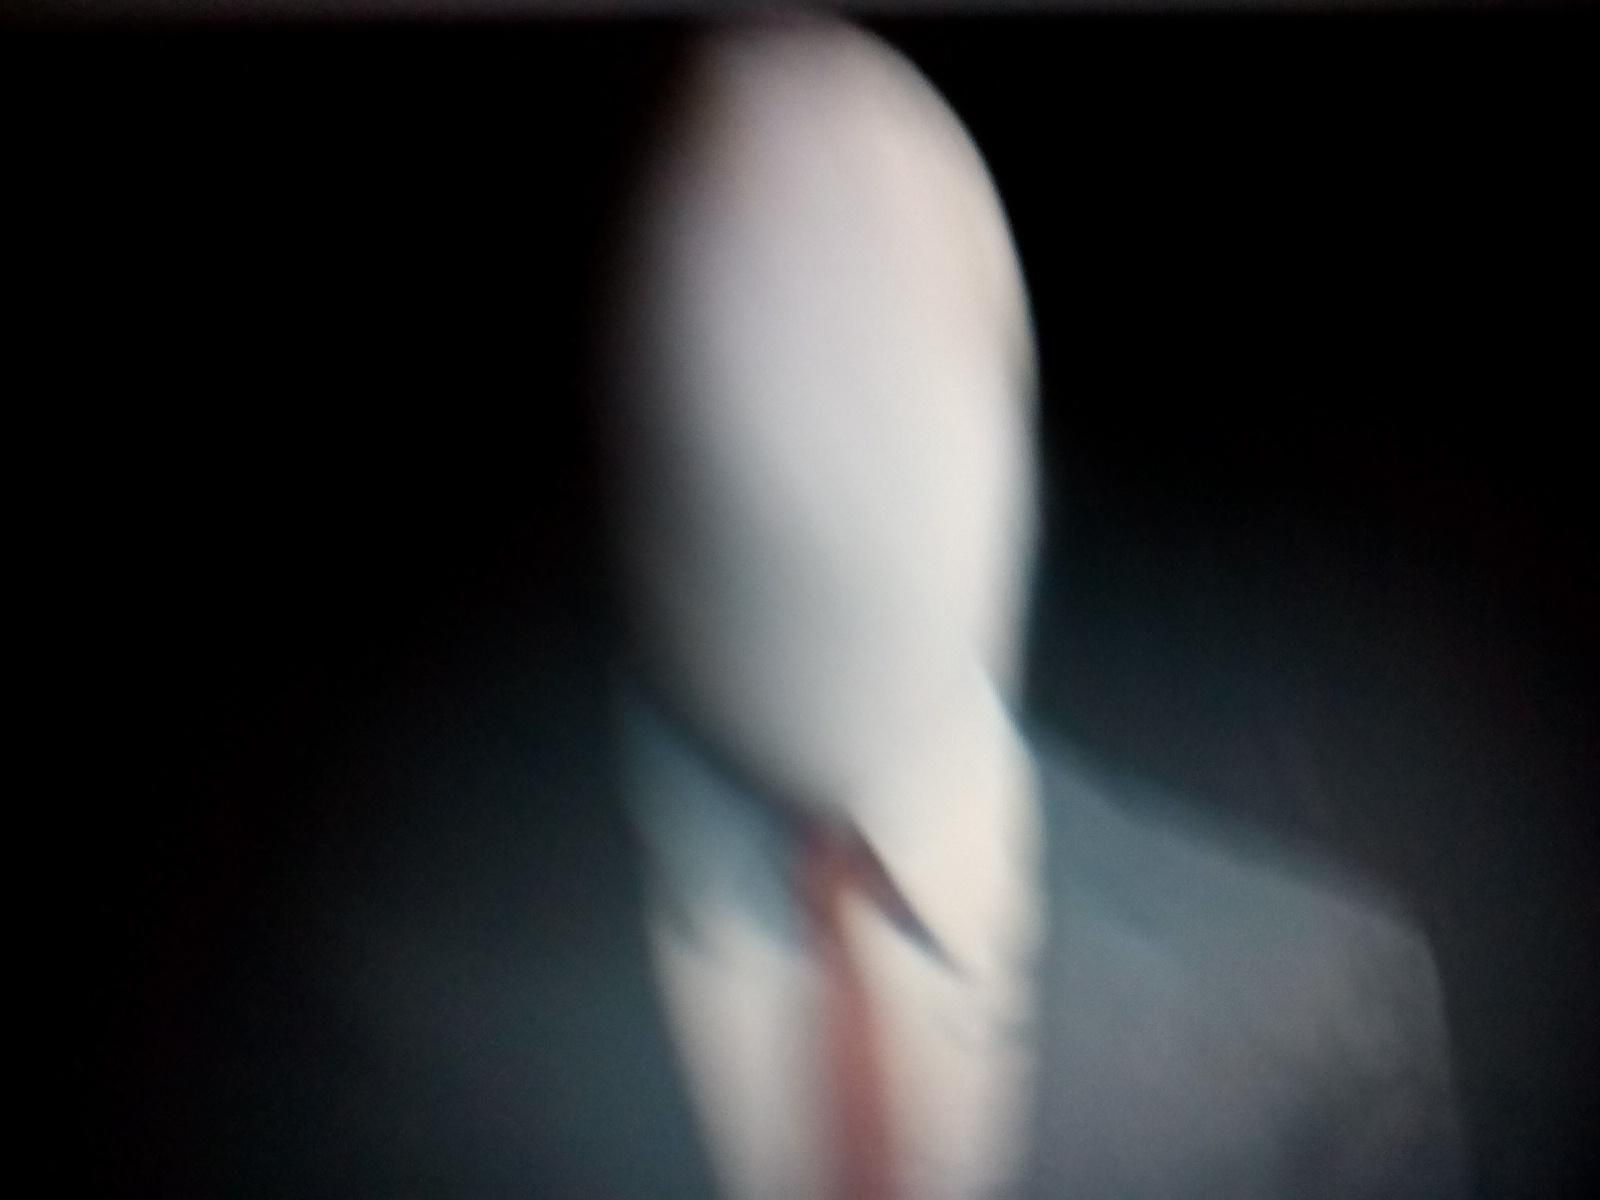 Slendy your up! Slenderman: don't.....call...me....slendy! Anyways...favorite color?